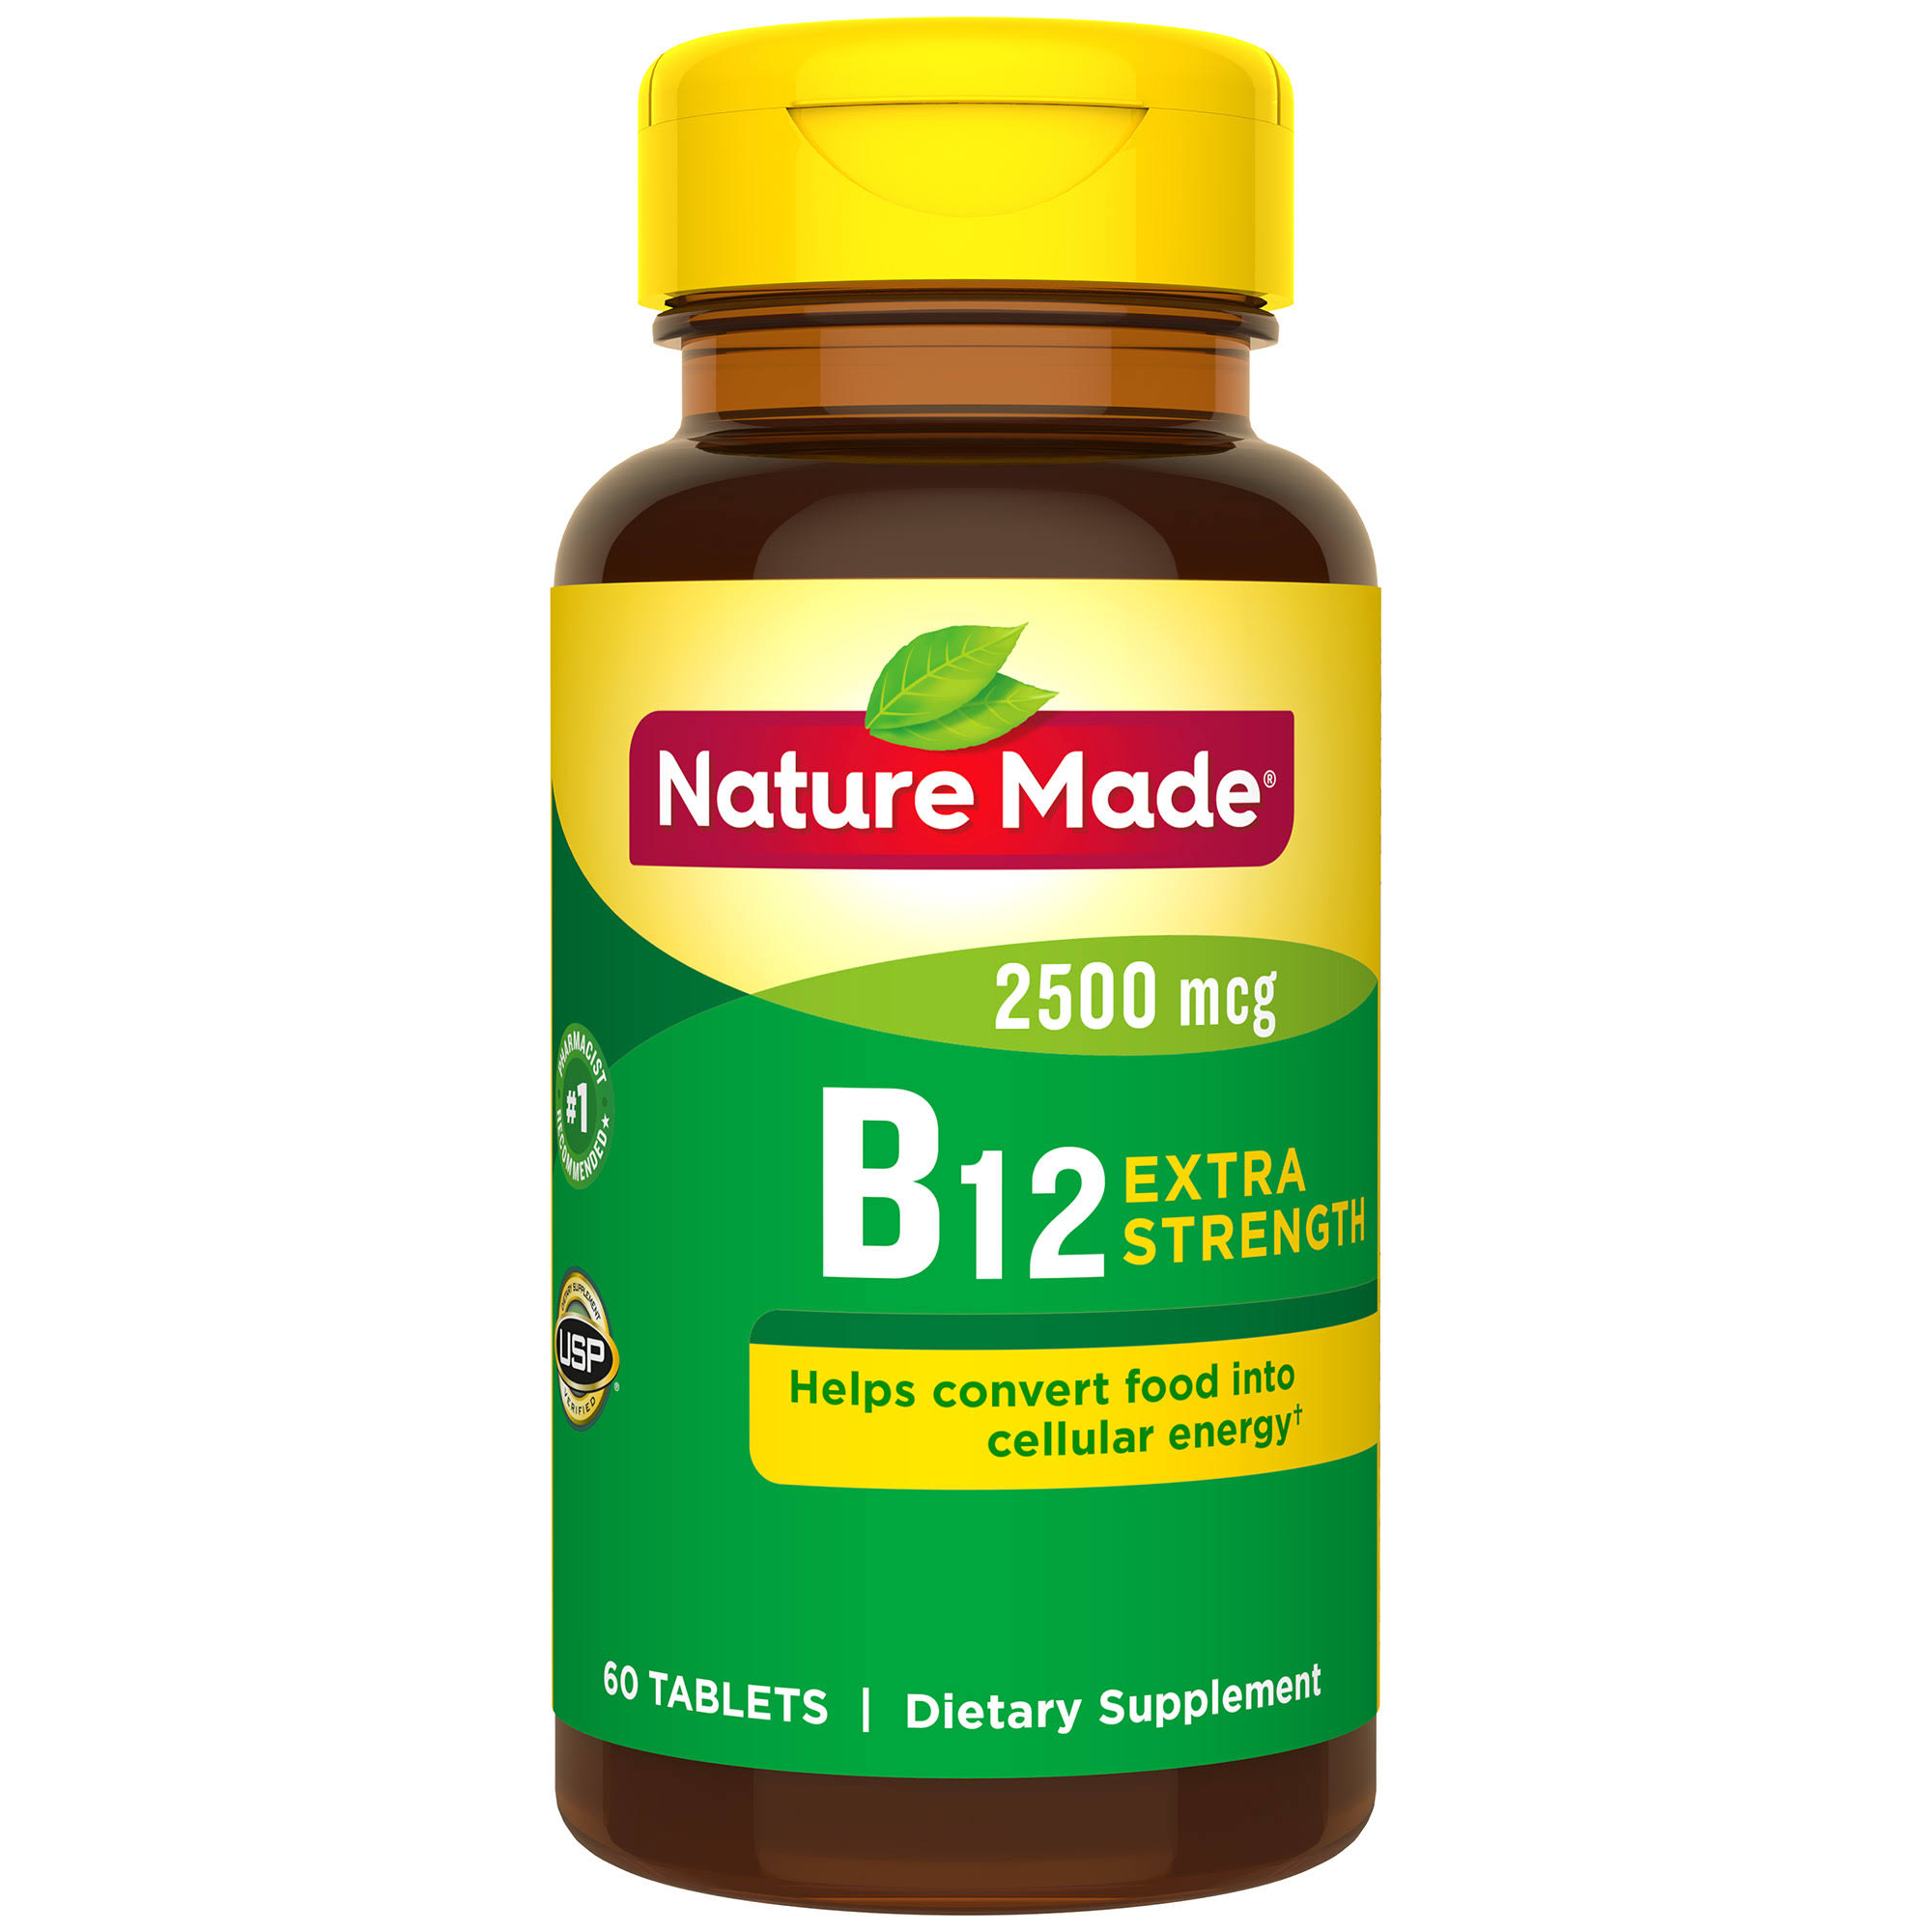 Nature Made Vitamin B-12 2500 mcg